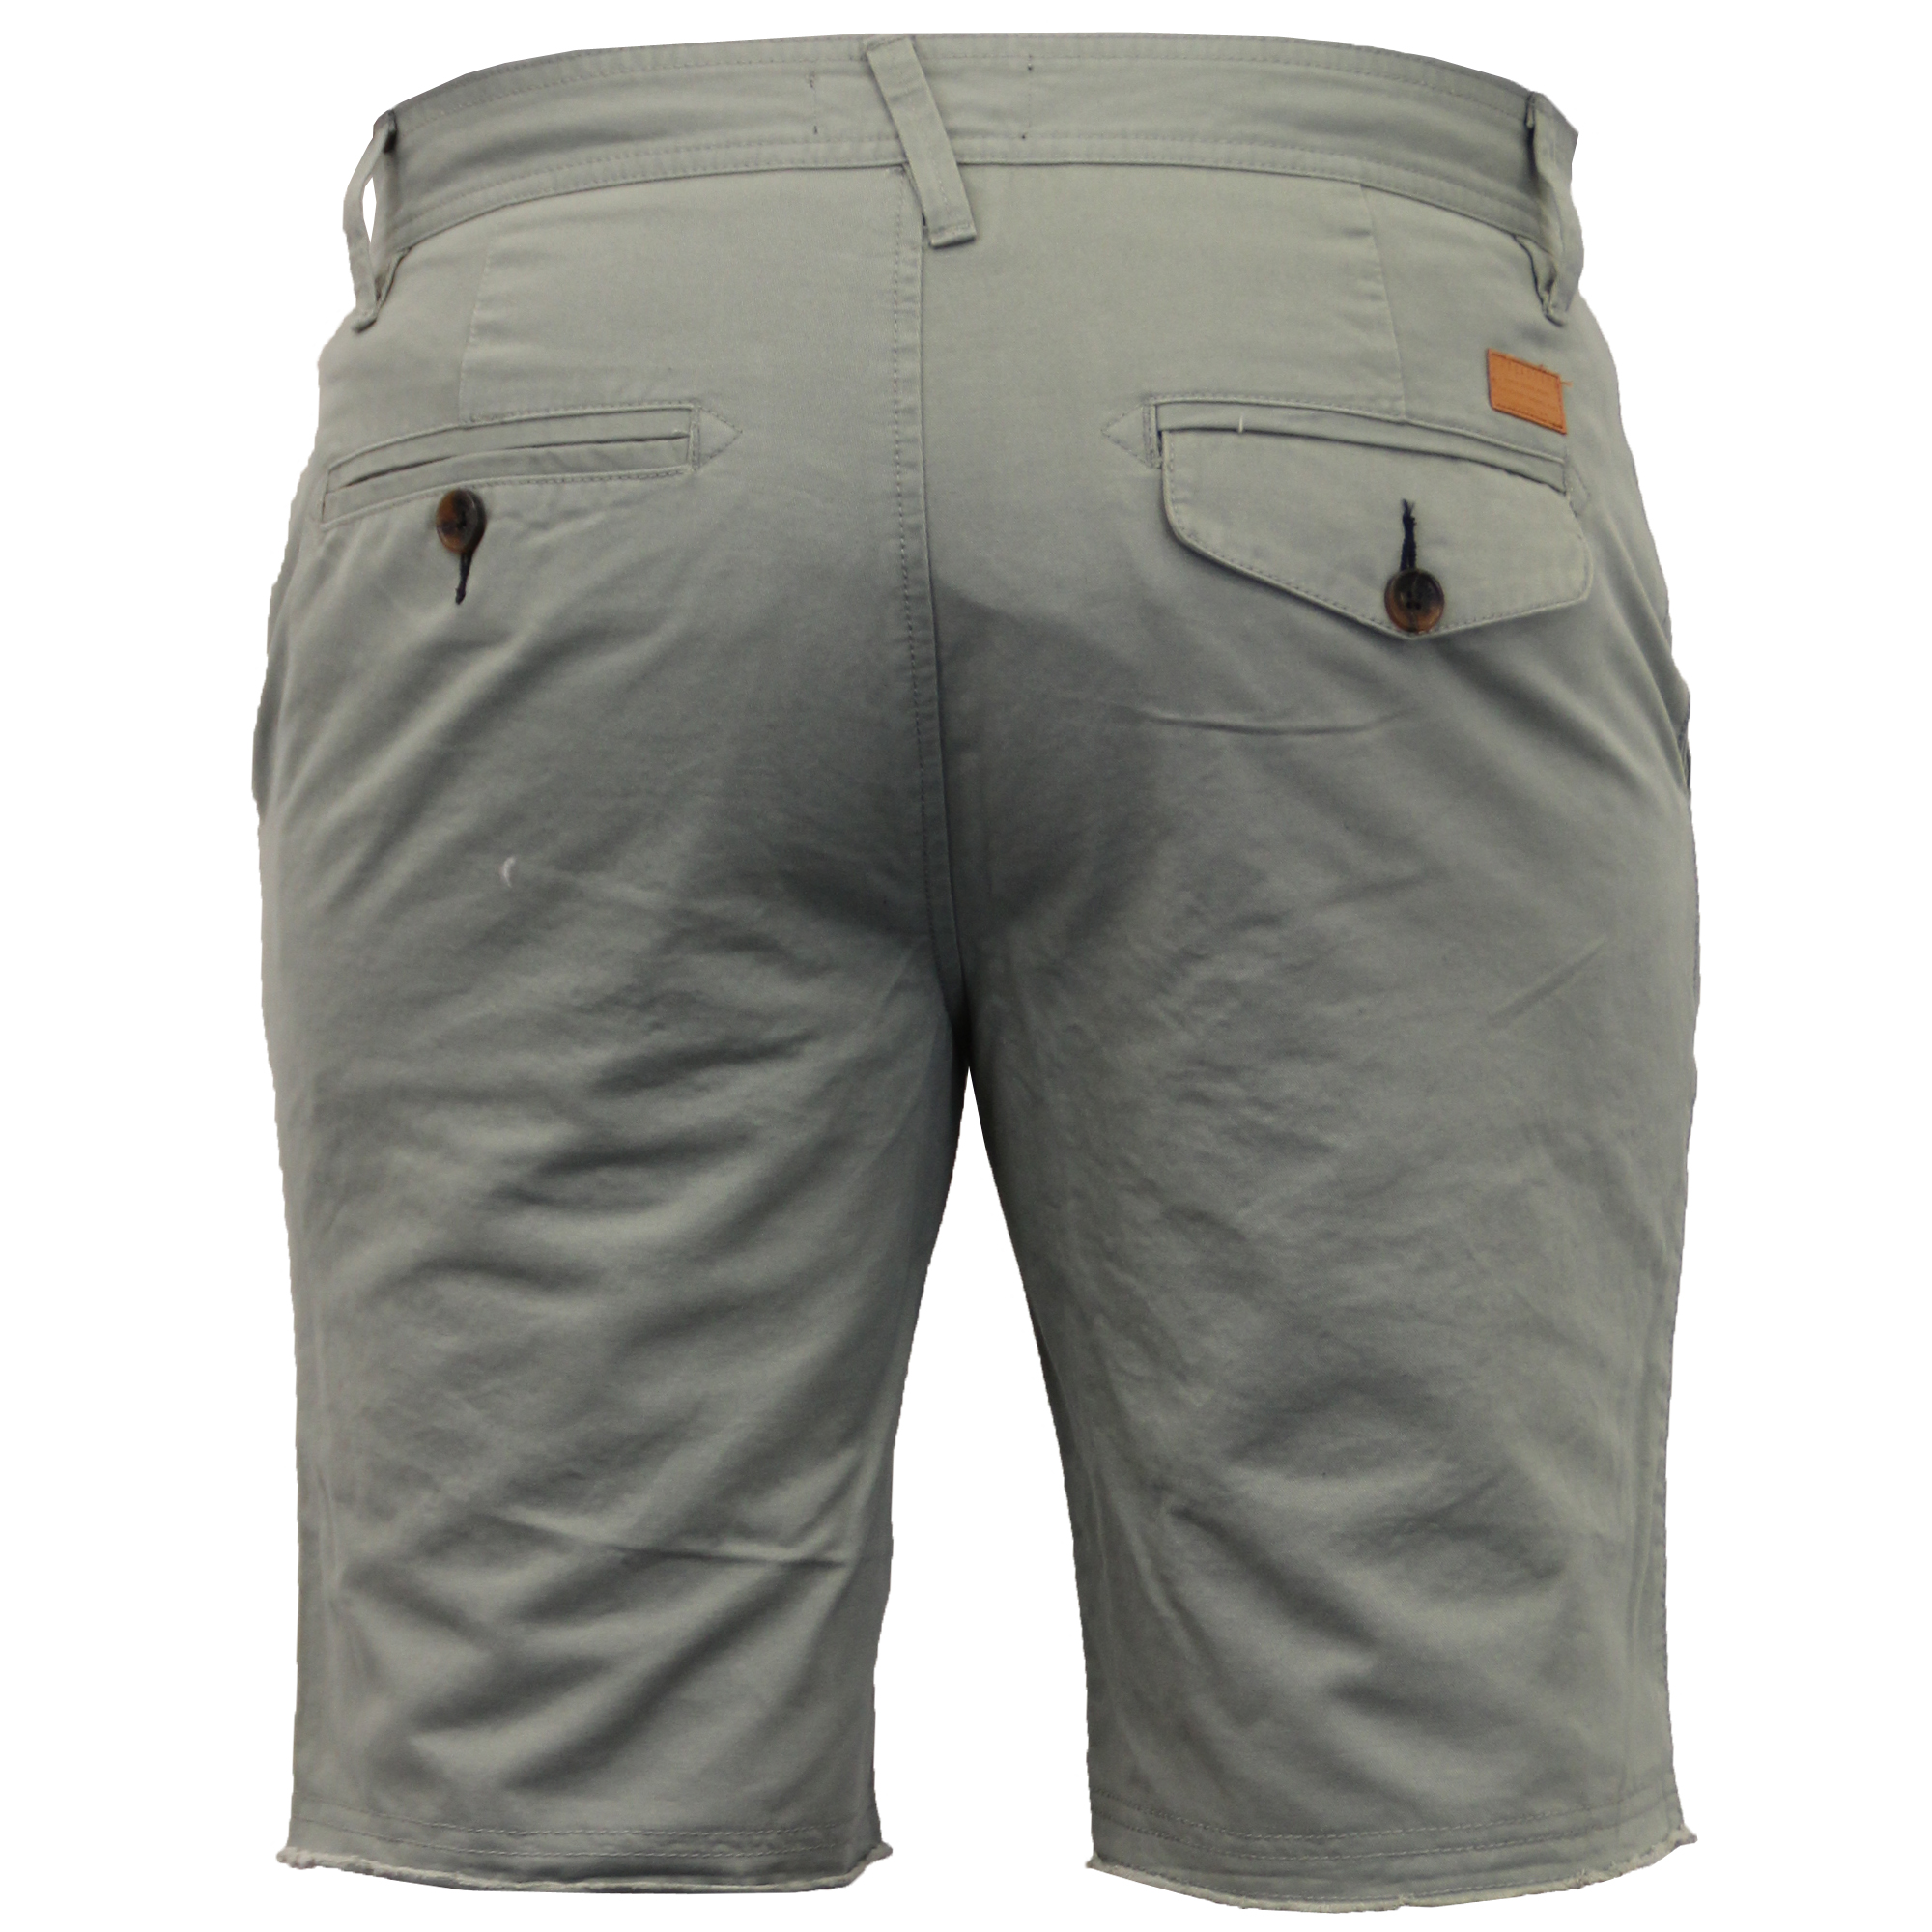 Mens-Chino-Shorts-Threadbare-Pants-Westace-Stallion-Knee-Length-Roll-Up-Summer thumbnail 26